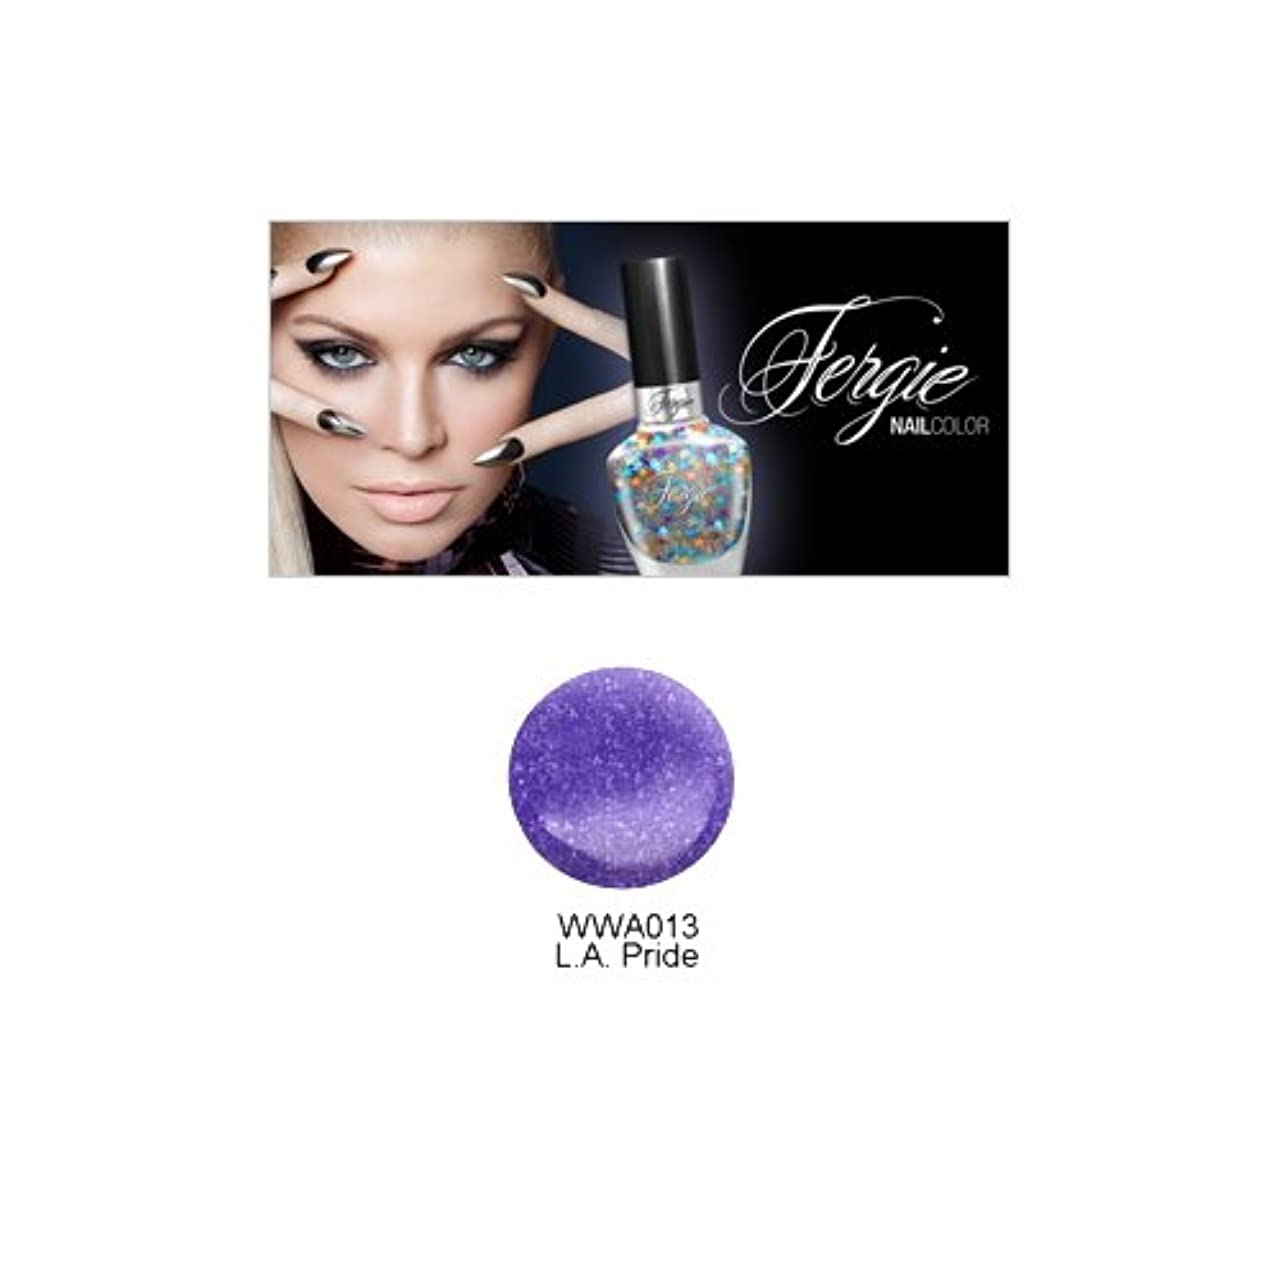 認証誕生日会員Wet N Wild FERGIE NAIL COLOR - L.A. Pride (並行輸入品)